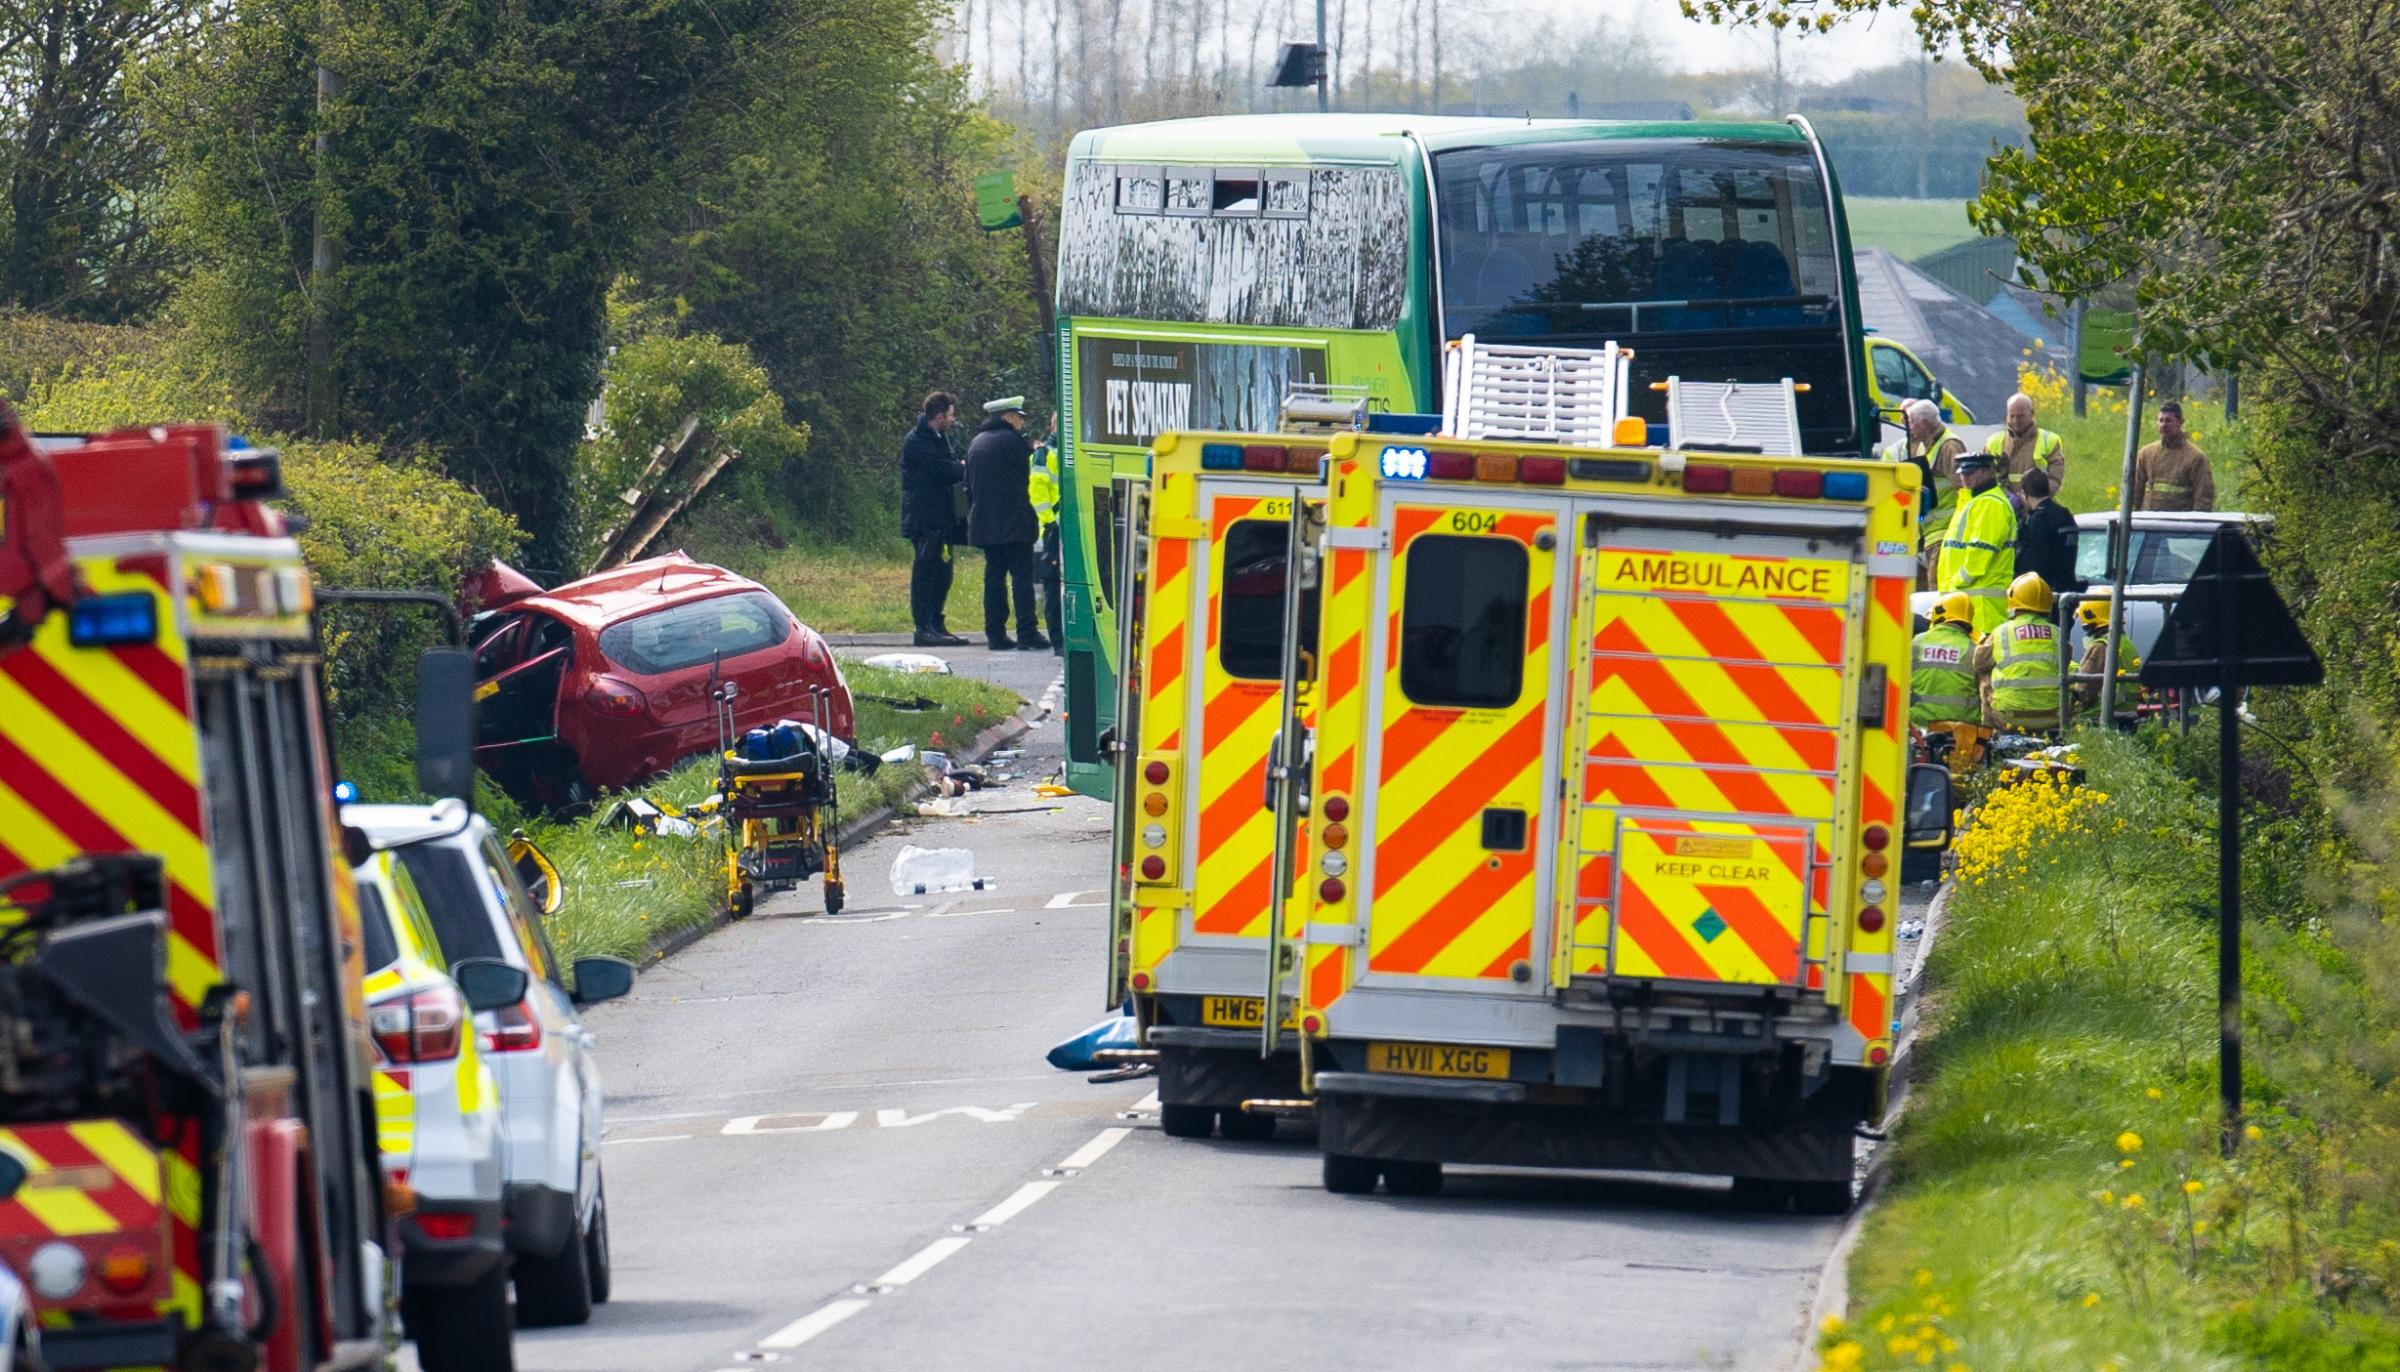 Isle of Wight NHS chief praises emergency response to fatal bus crash major incident on Forest Road